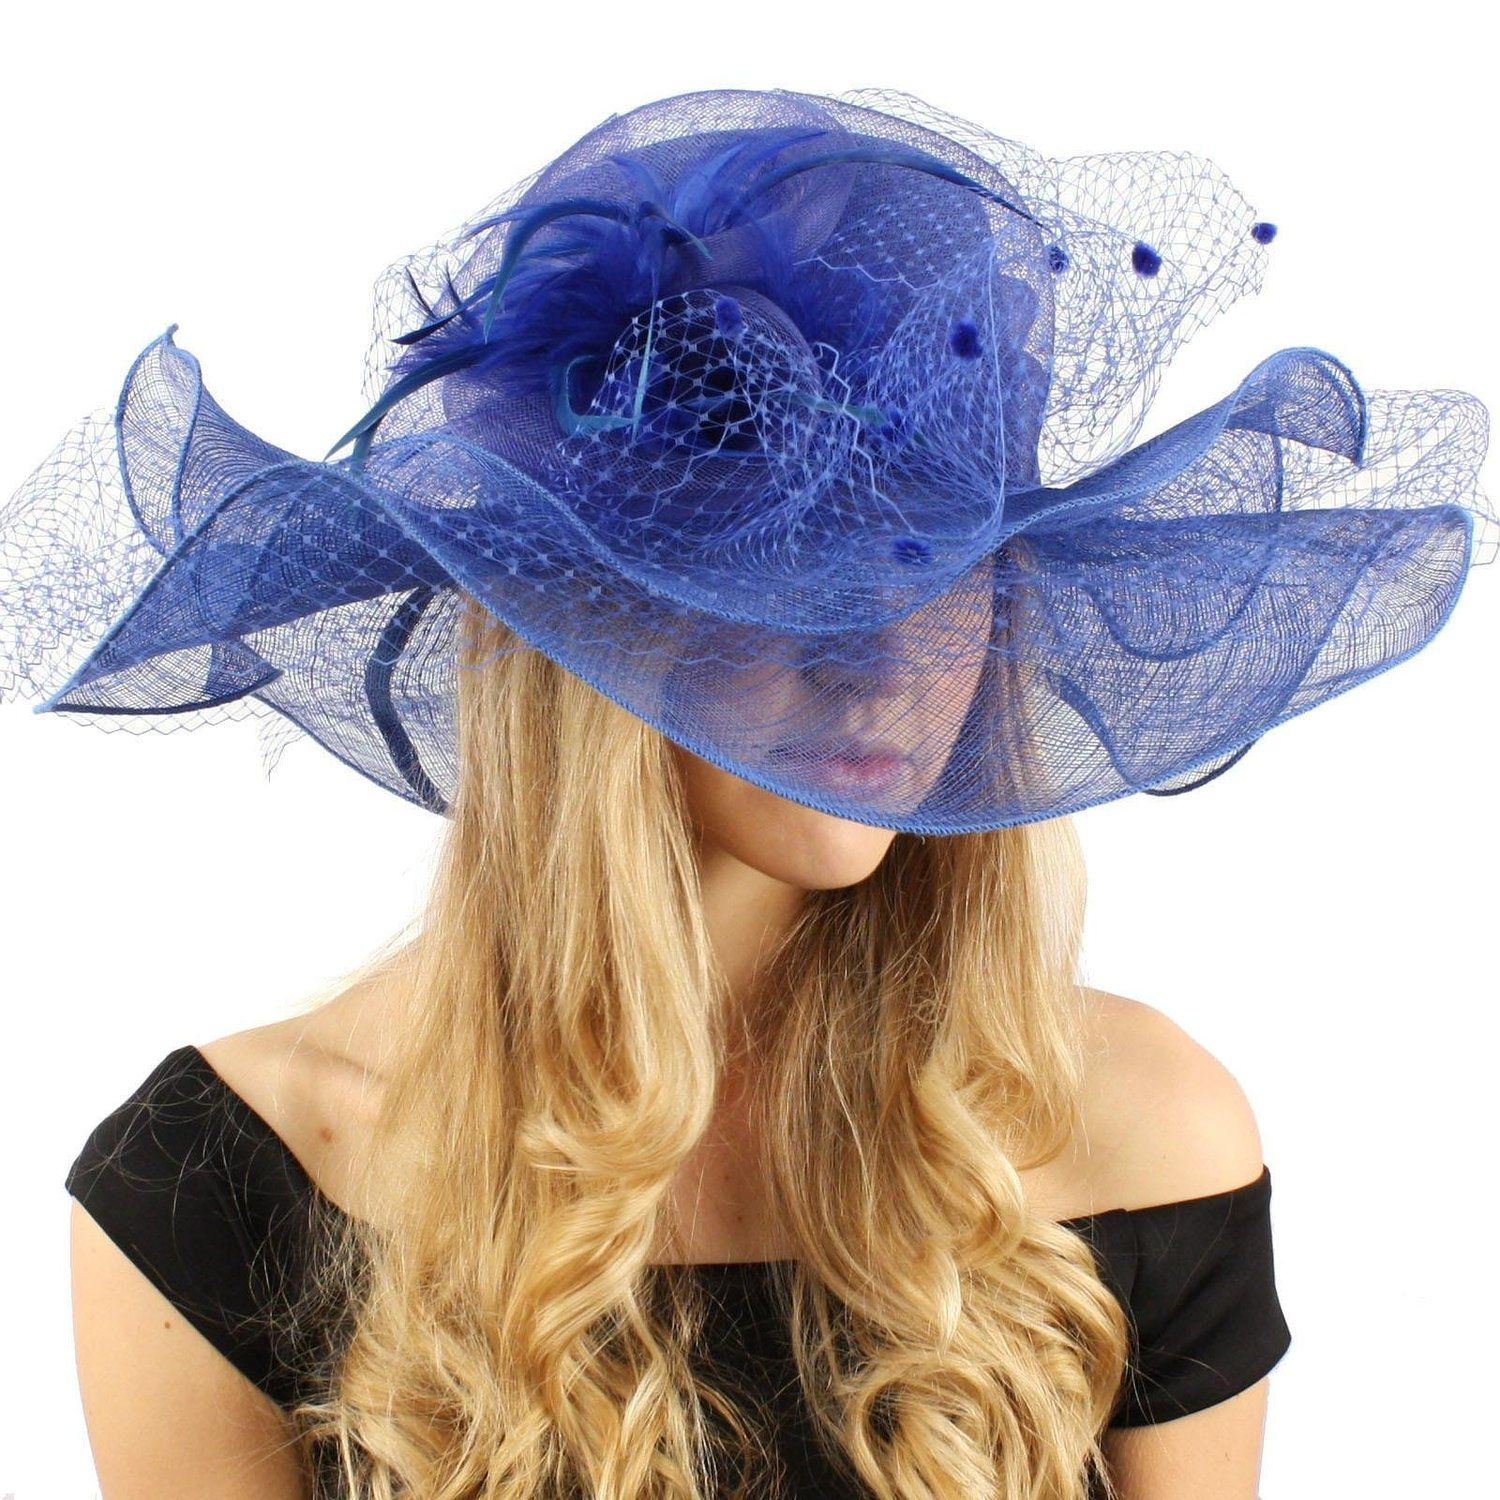 Amazon Com Dapper Darling Sinamay Fascinator With Feathers Quills In 4 Colors Fascinator Colors Blue Clothing Sinamay Fascinator Fascinator Sinamay